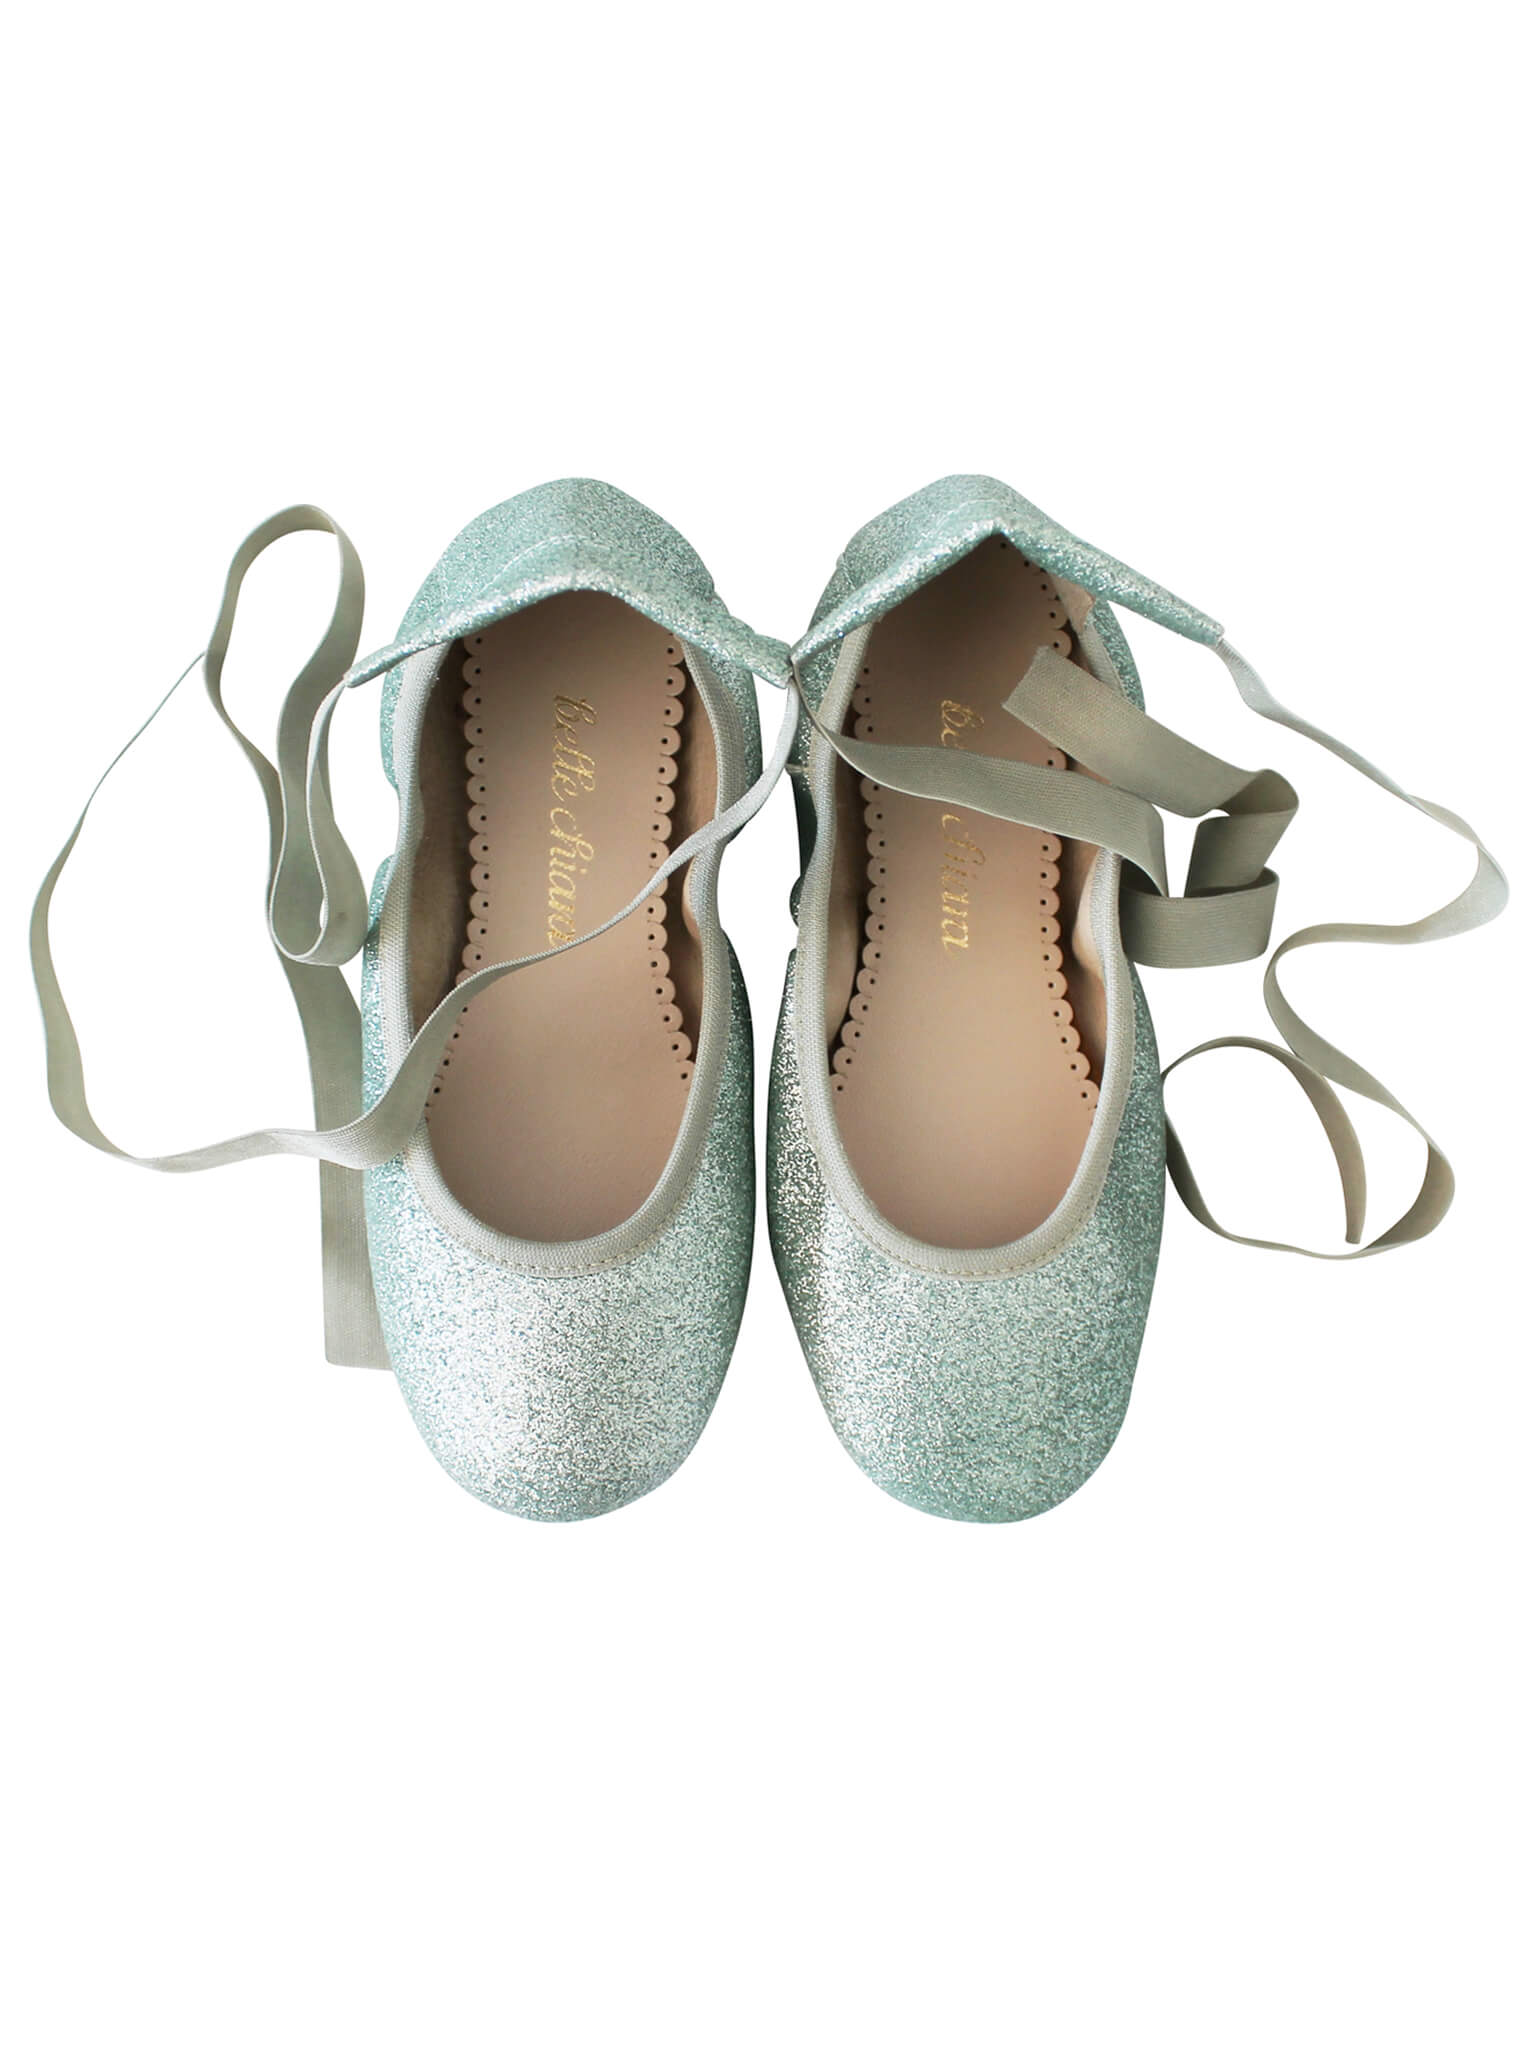 c6635164e76 BELLE CHIARA LEATHER BALLET FLATS - GLITTER - GREEN - Welcome to the ...